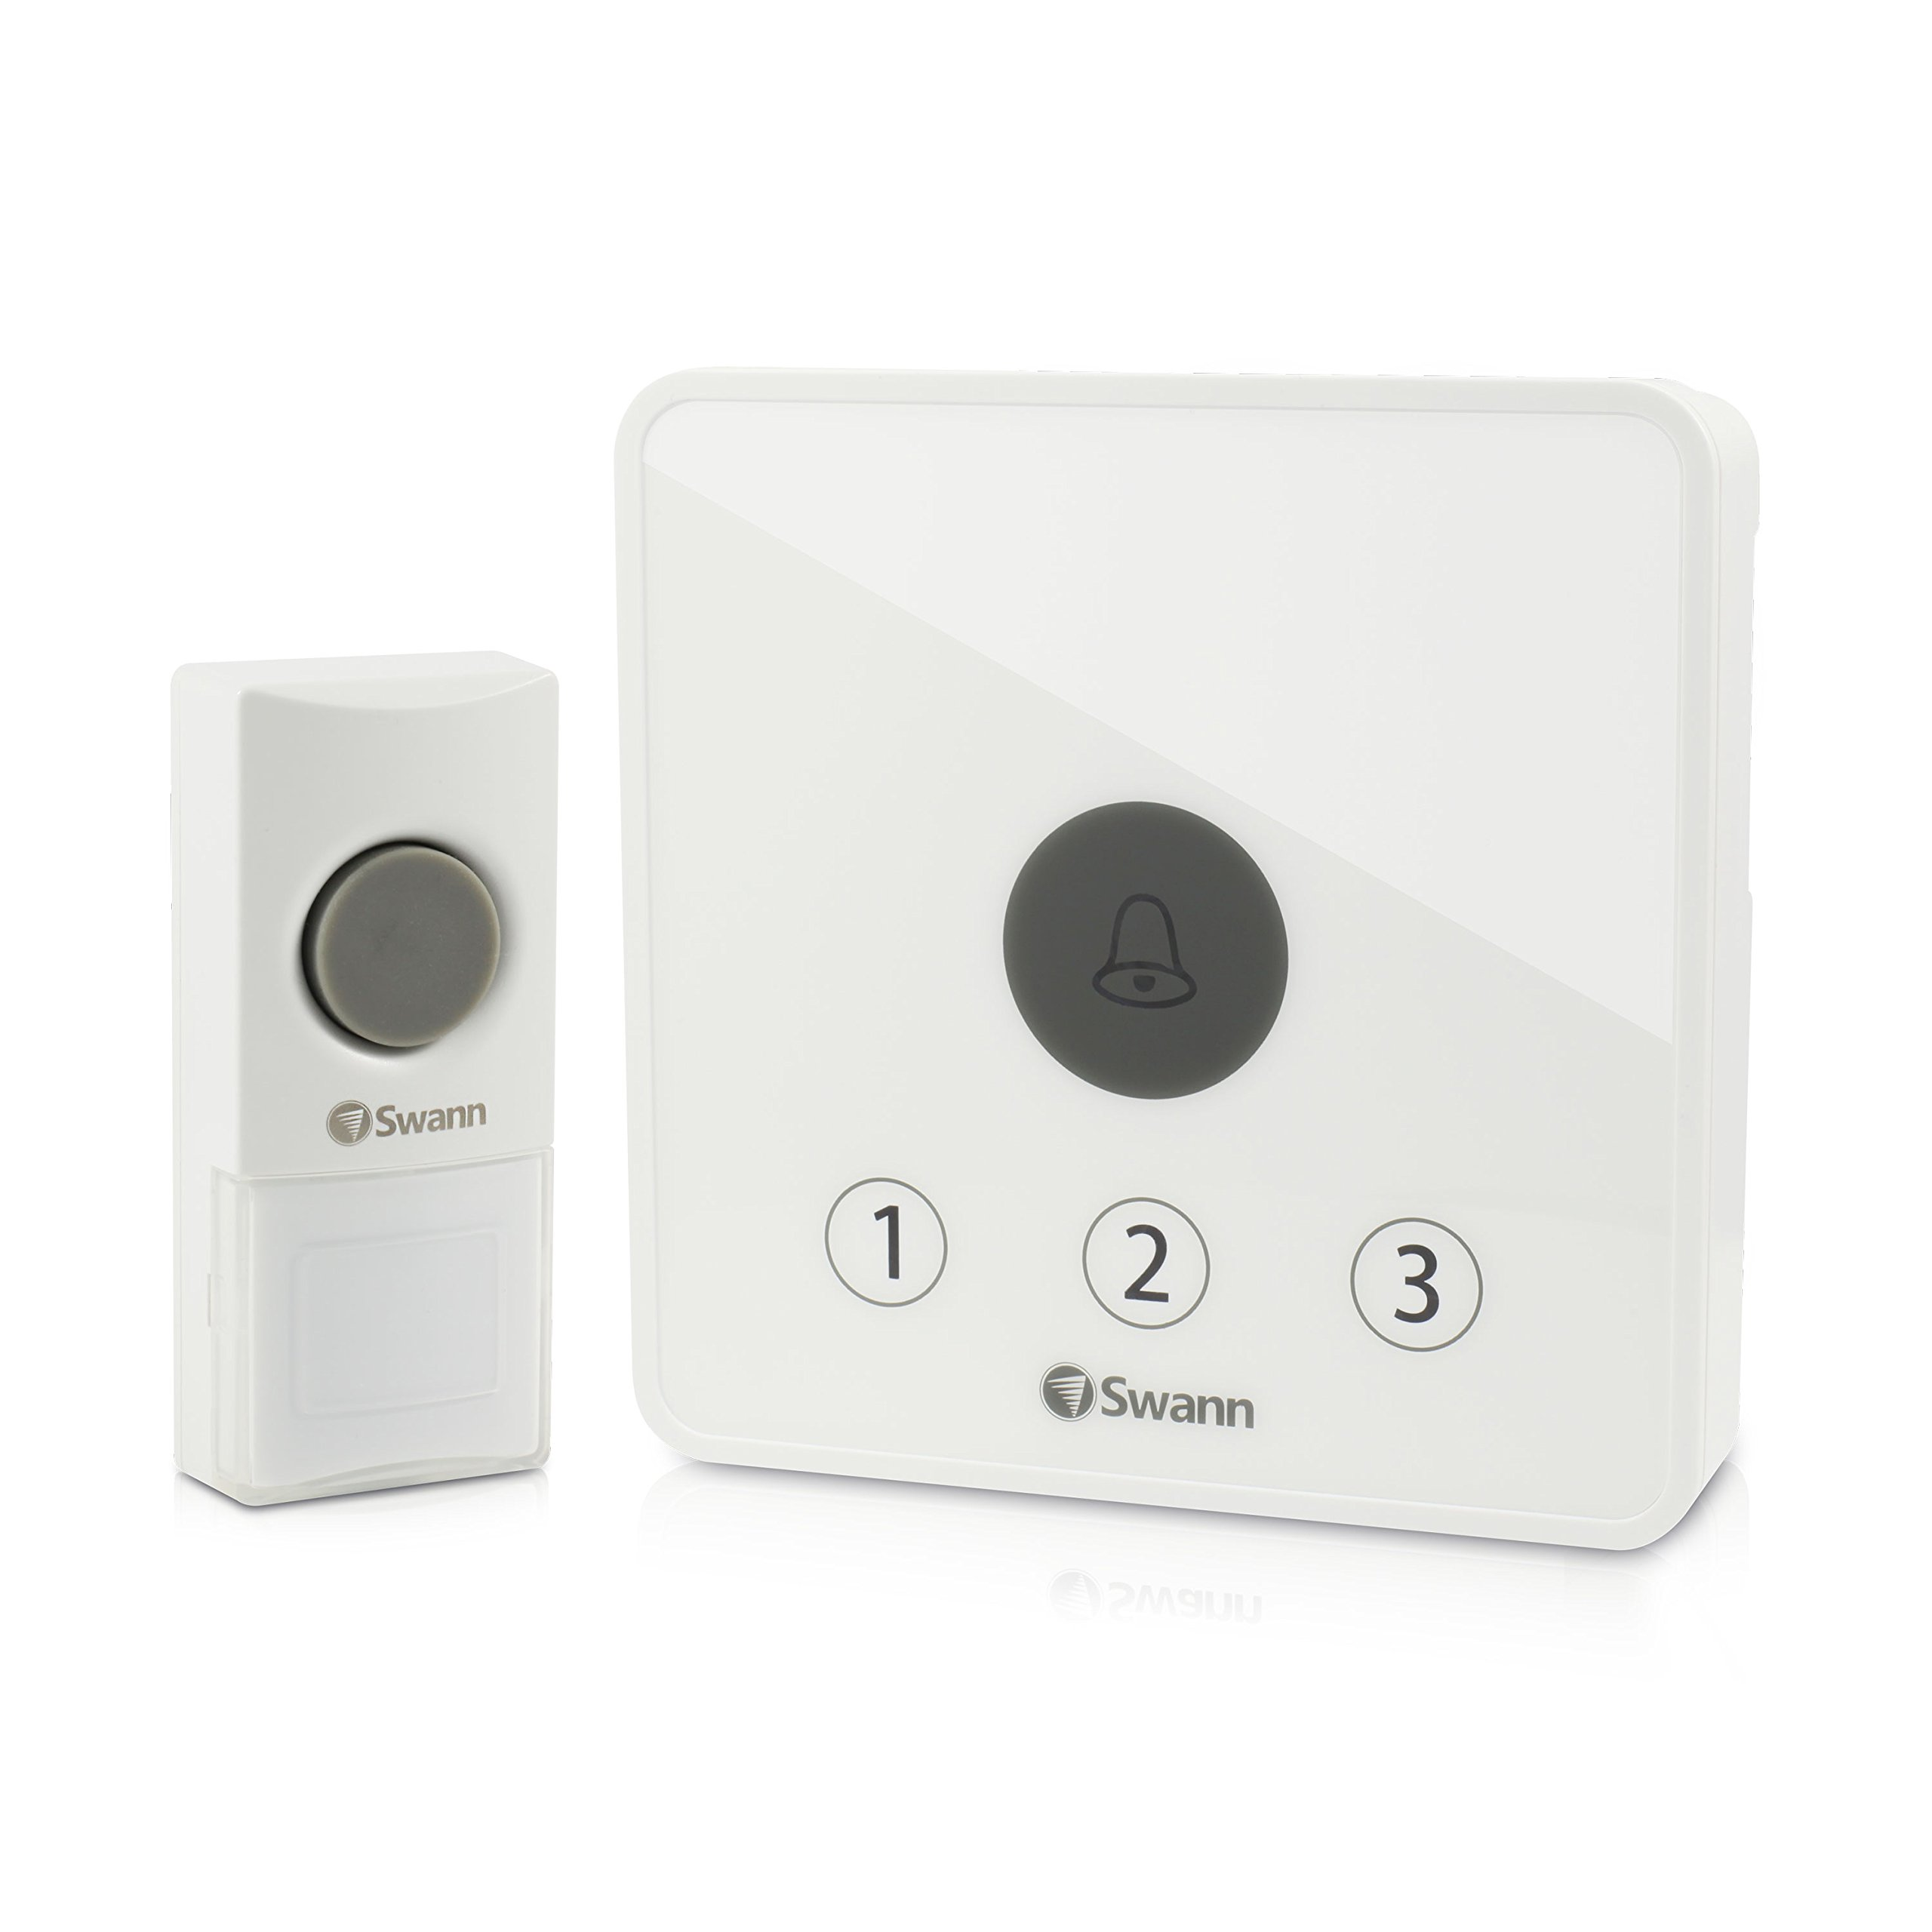 Swann Home Doorbell Kit alert Ring Detector, White (SWADS-DOORBK-GL)